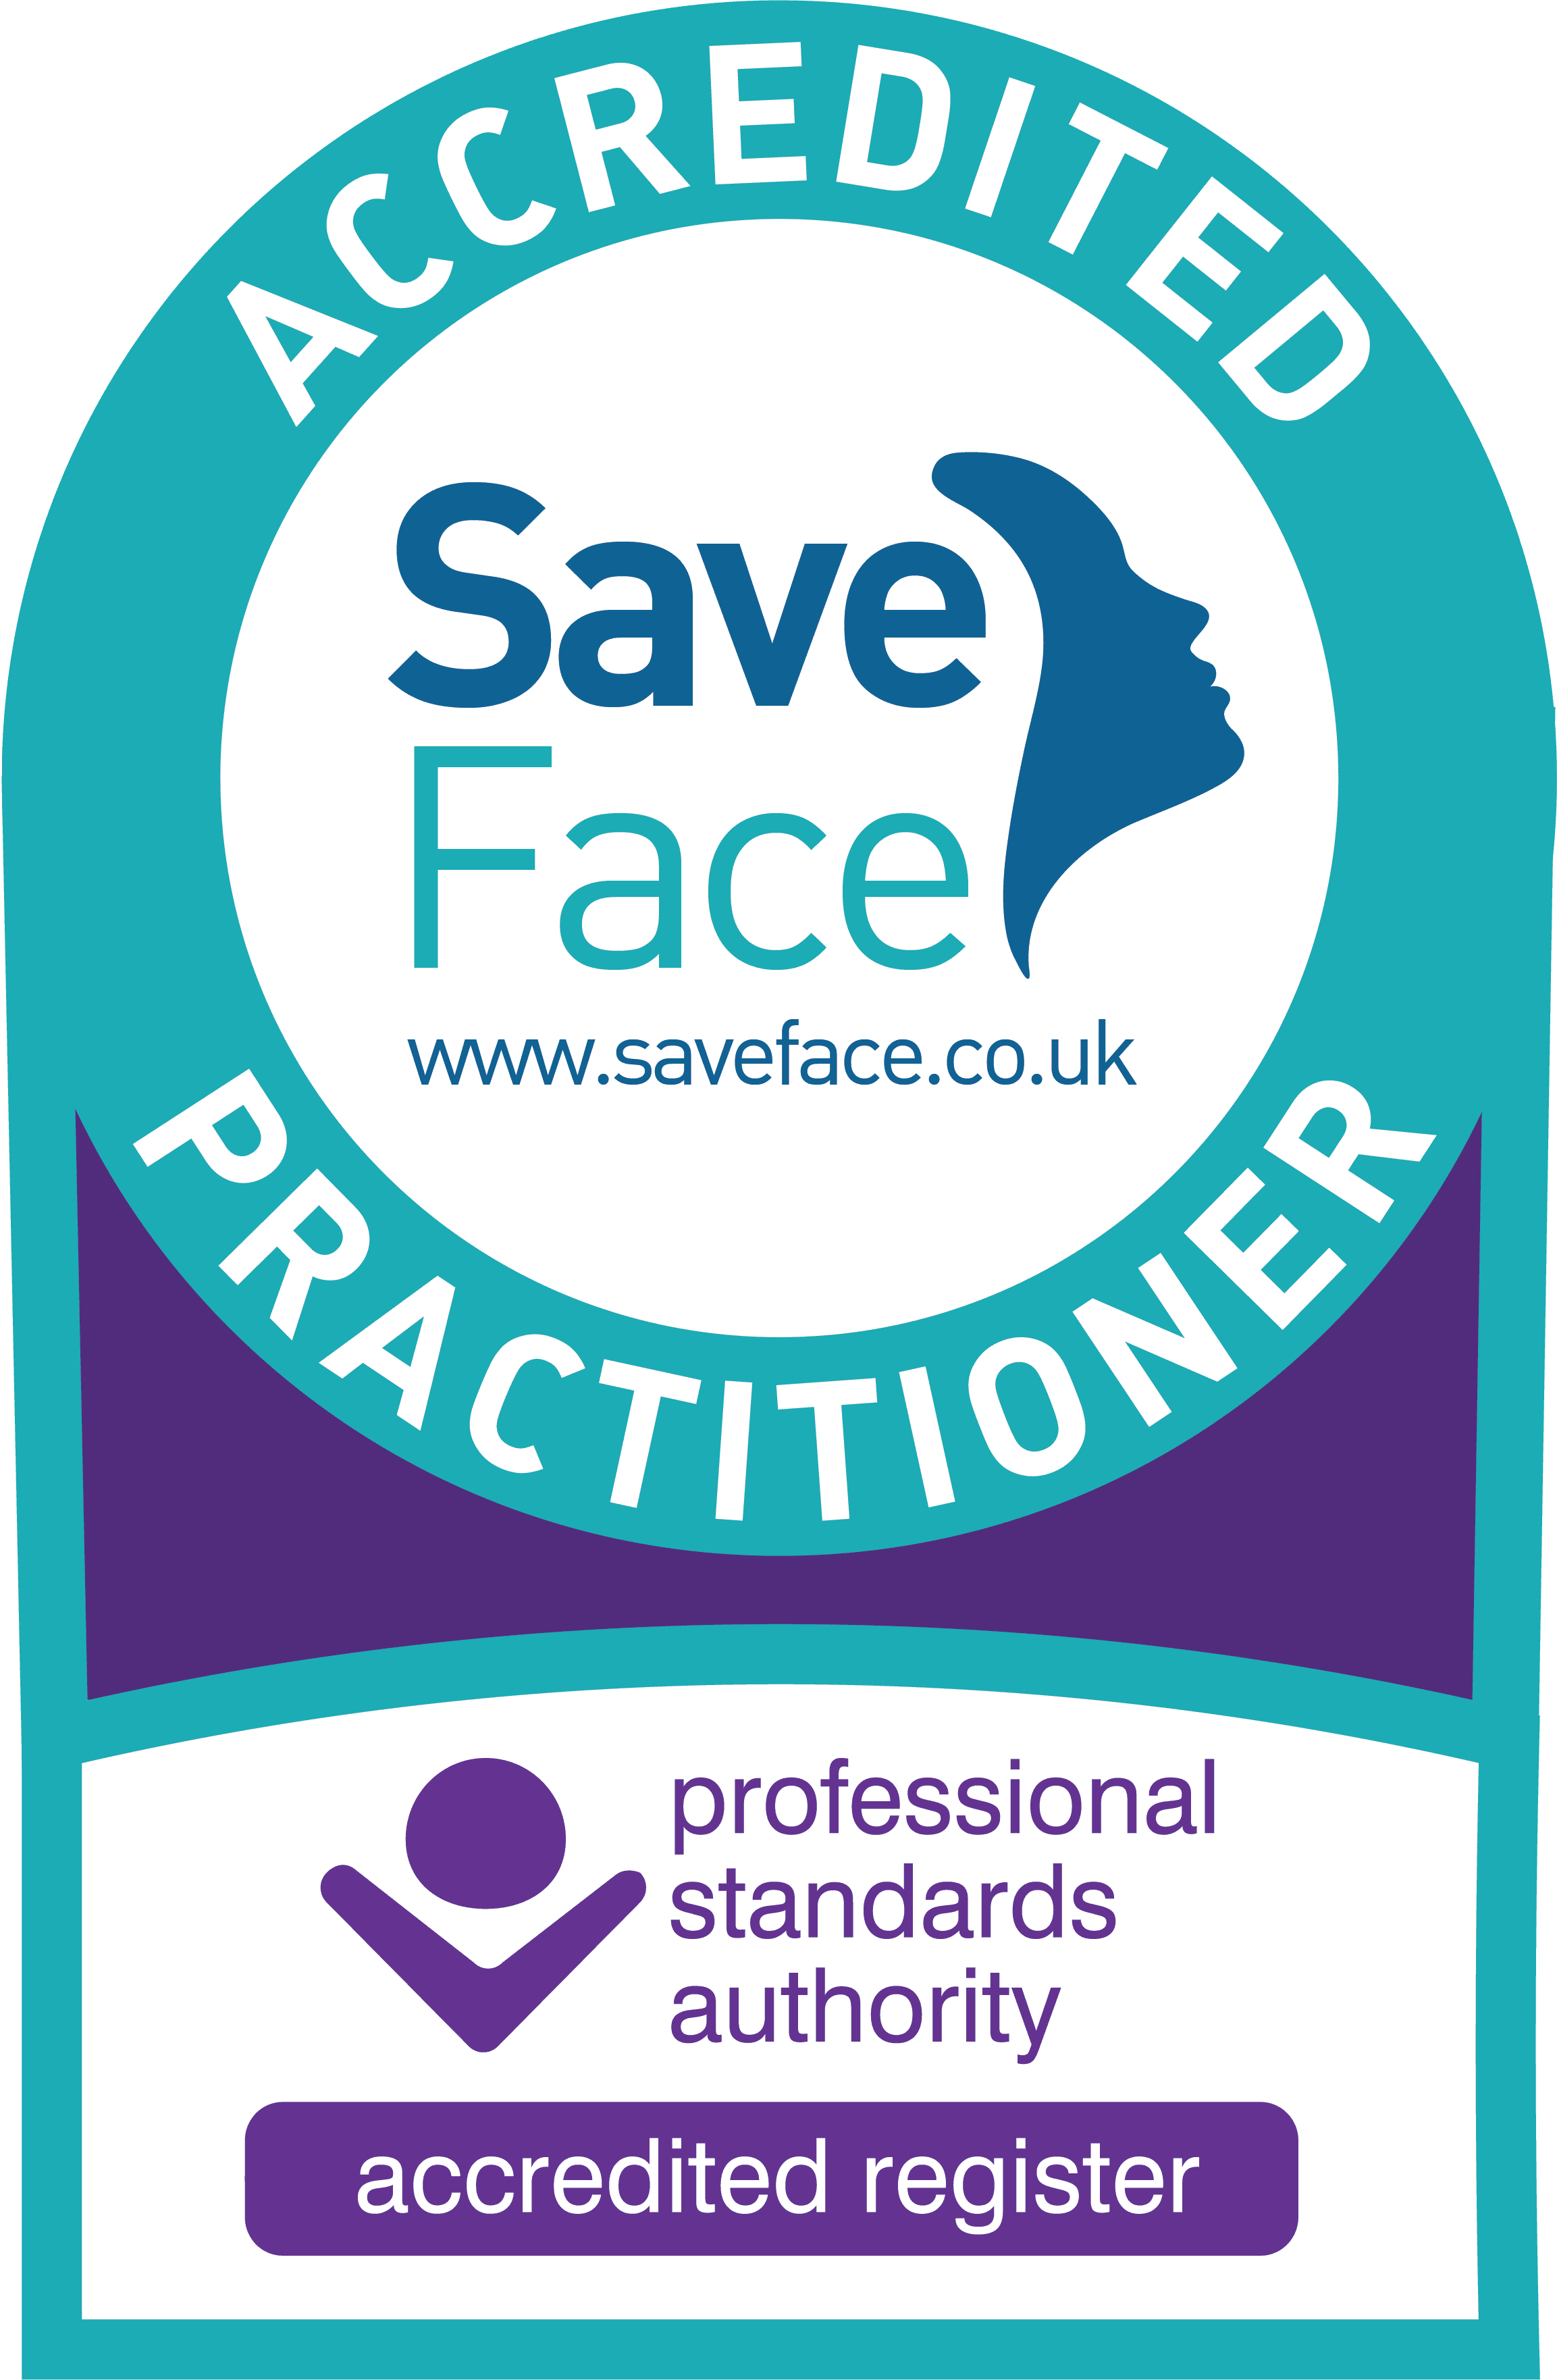 Accredited Save Face Practitioner